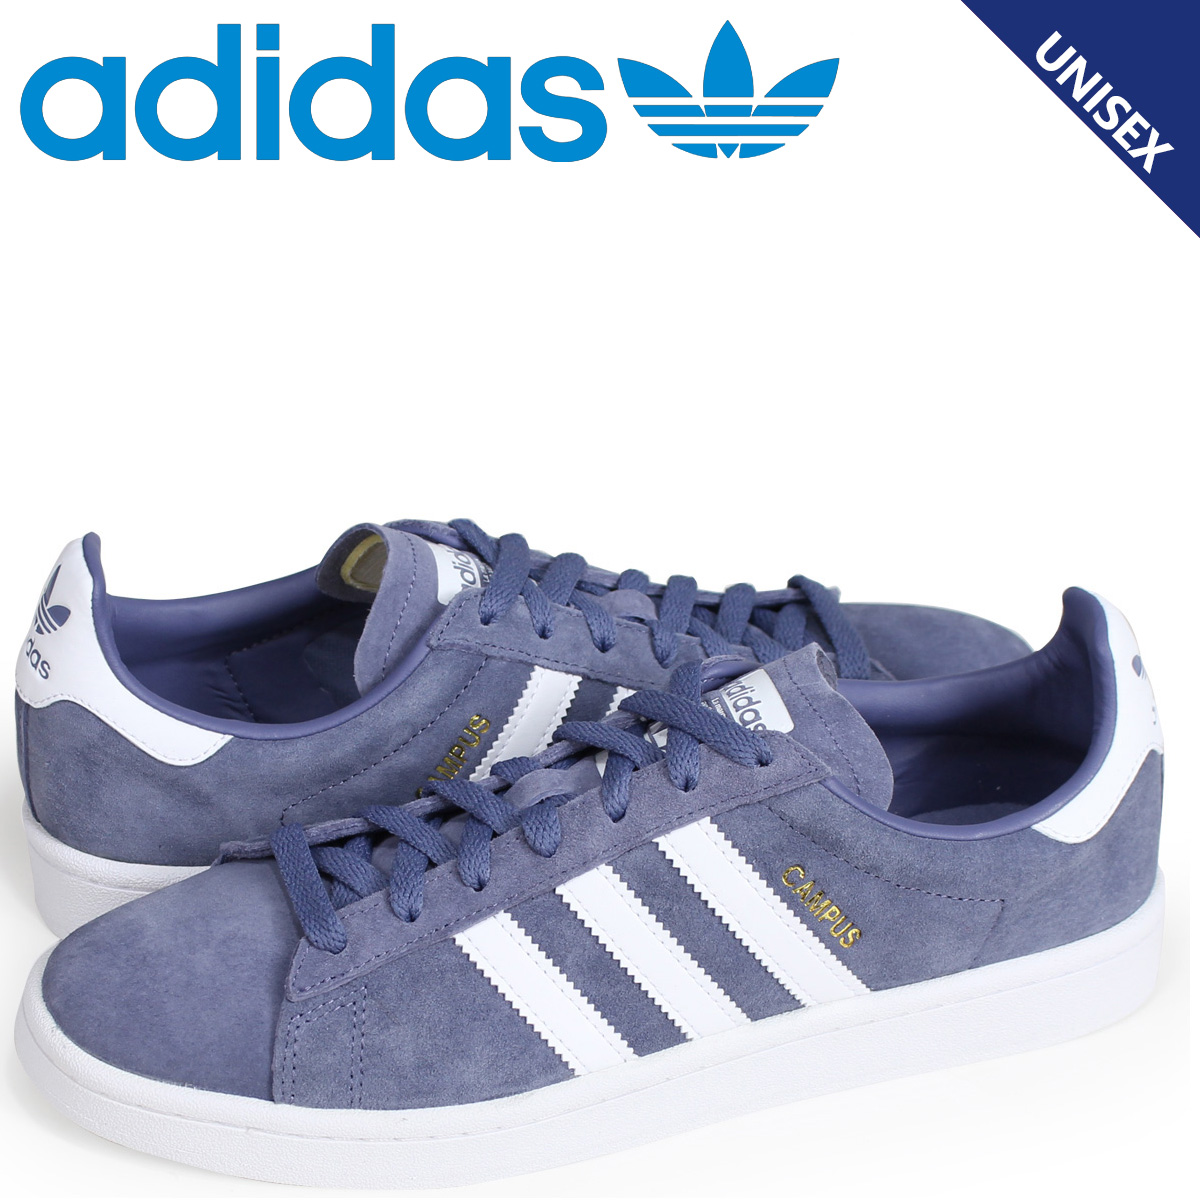 uk availability 93ad6 2fa49 adidas Originals campus Adidas originals sneakers CAMPUS men gap Dis AQ1089  blue load planned Shinnyu load in reservation product 77 containing